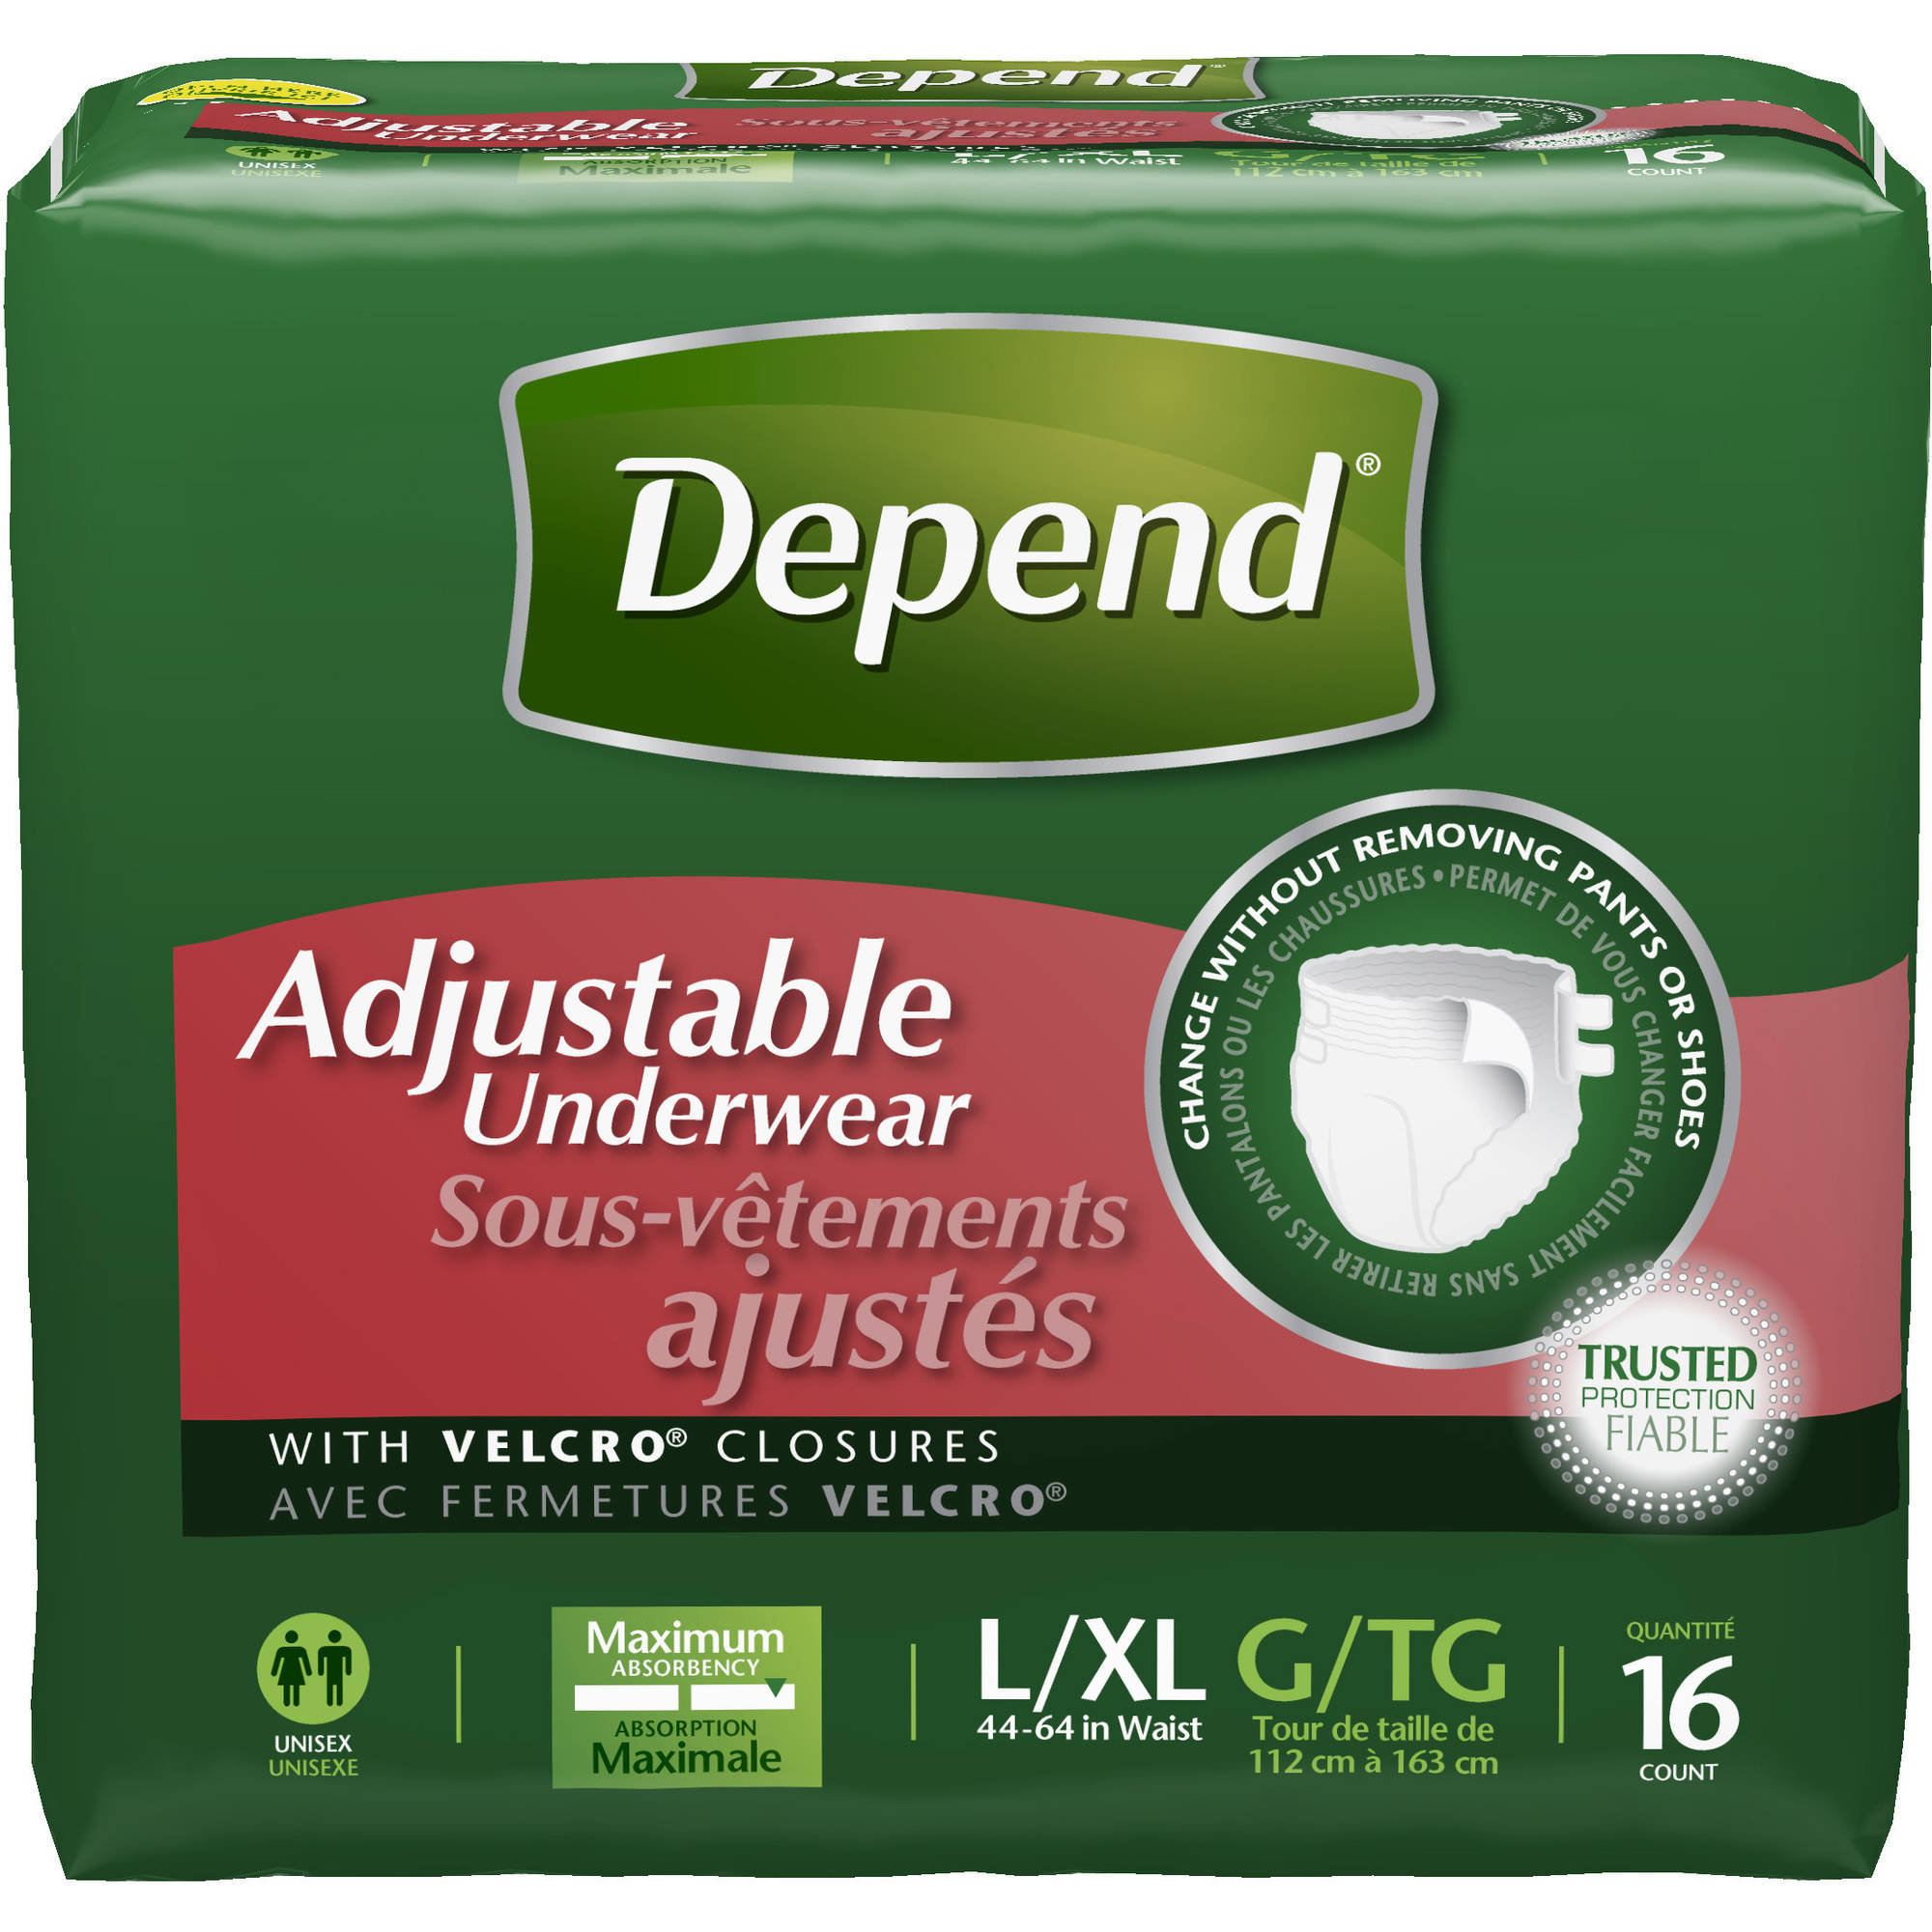 Depend Adjustable Underwear Maximum Absorbency, Large/Extra Large 16 Count